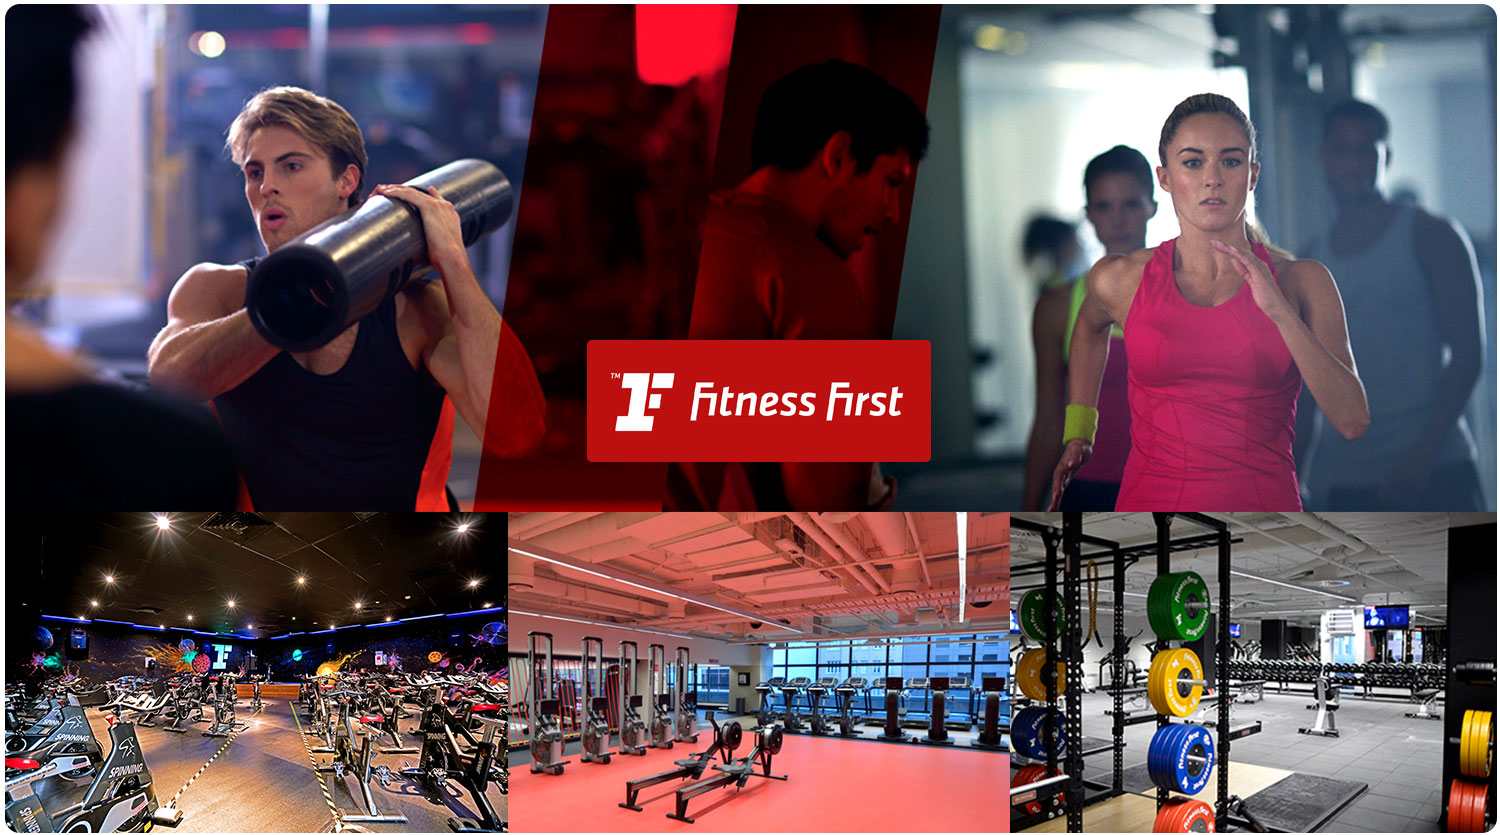 Start your Fitness Journey with Fitness First with only $14.95 for 14 days at Fitness First Doncaster VIC. Experience our first class gym and freestyle classes inc. Zumba, Pilates, Yoga, HIIT, Boxing, Les Mills and more. Take the first step with Fitness First Doncaster VIC.